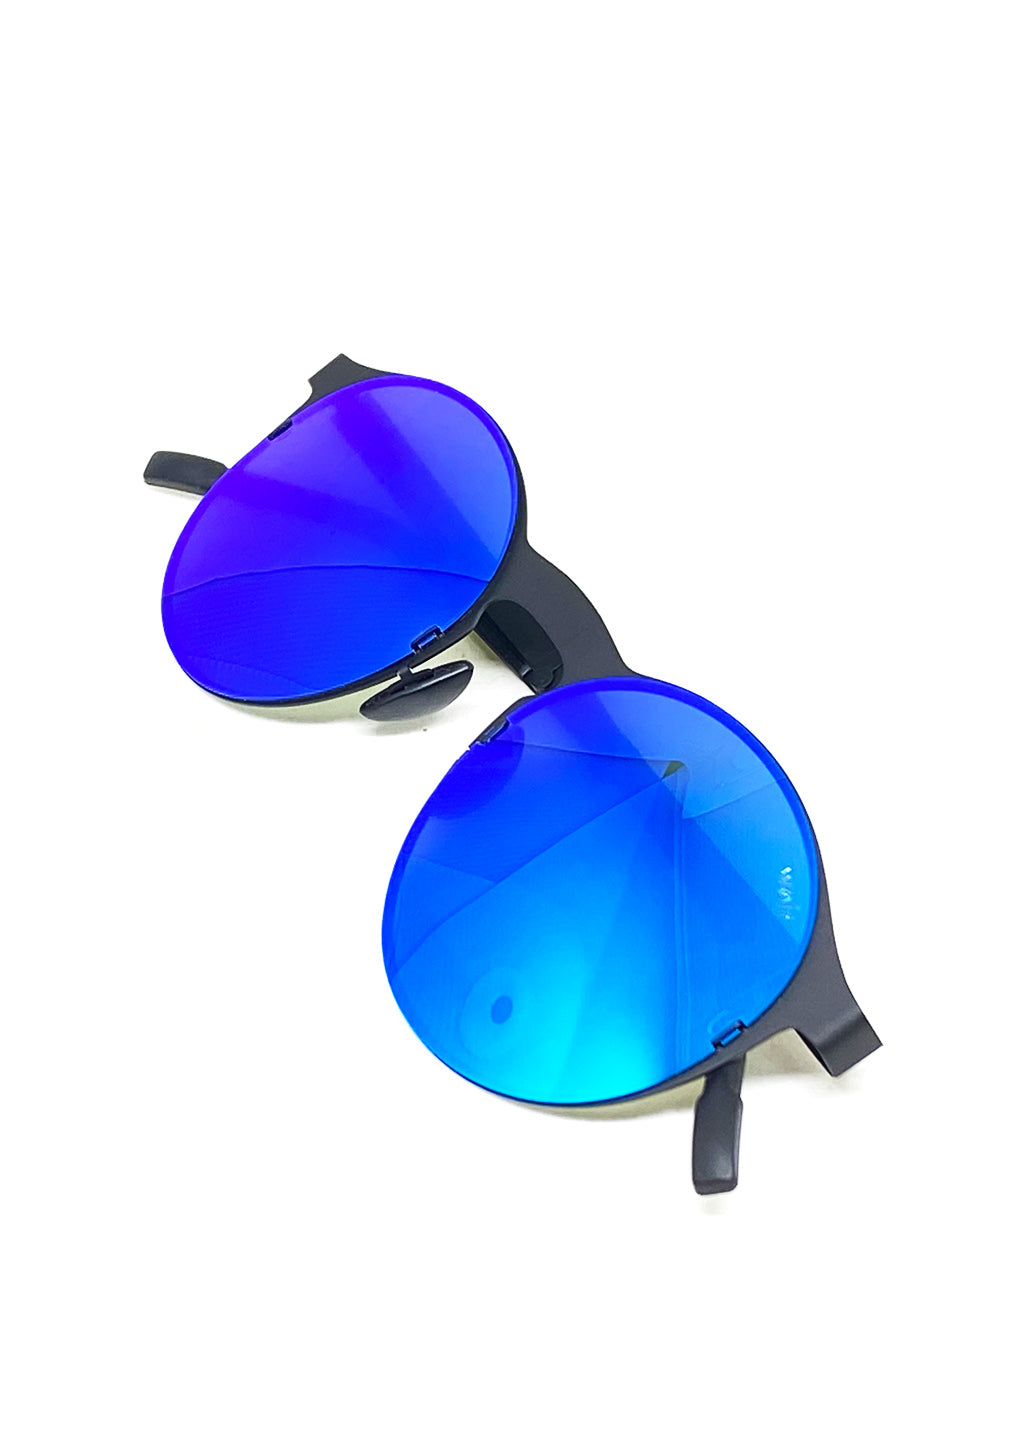 Foldable sunglasses - Looper classic round design - Laying down.